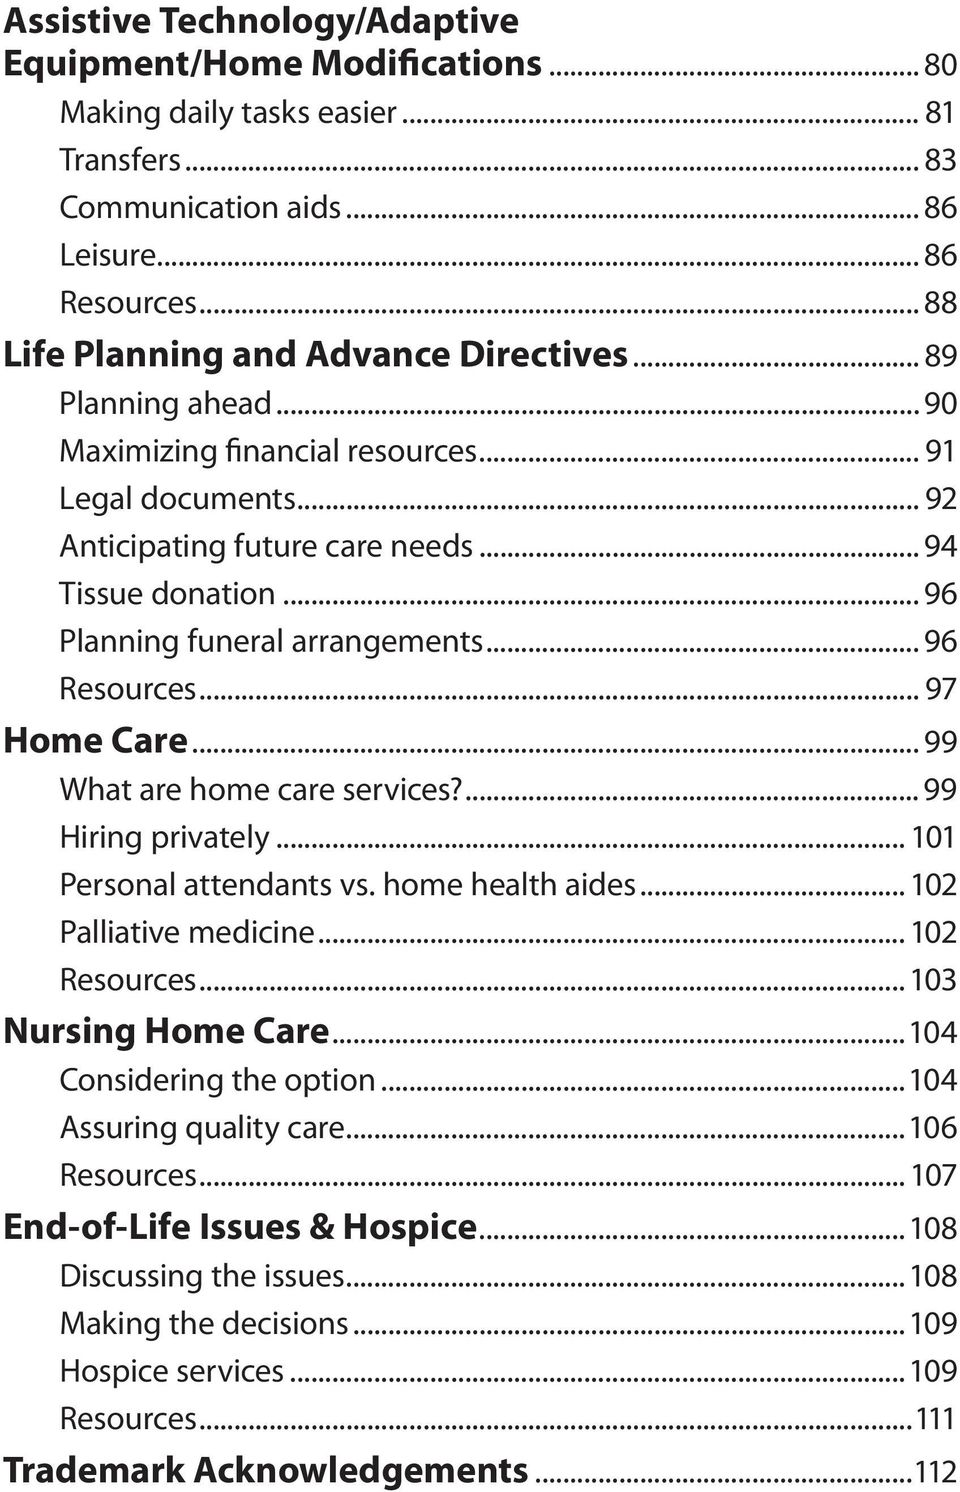 .. 96 Planning funeral arrangements... 96 Resources... 97 Home Care... 99 What are home care services?... 99 Hiring privately... 101 Personal attendants vs. home health aides... 102 Palliative medicine.